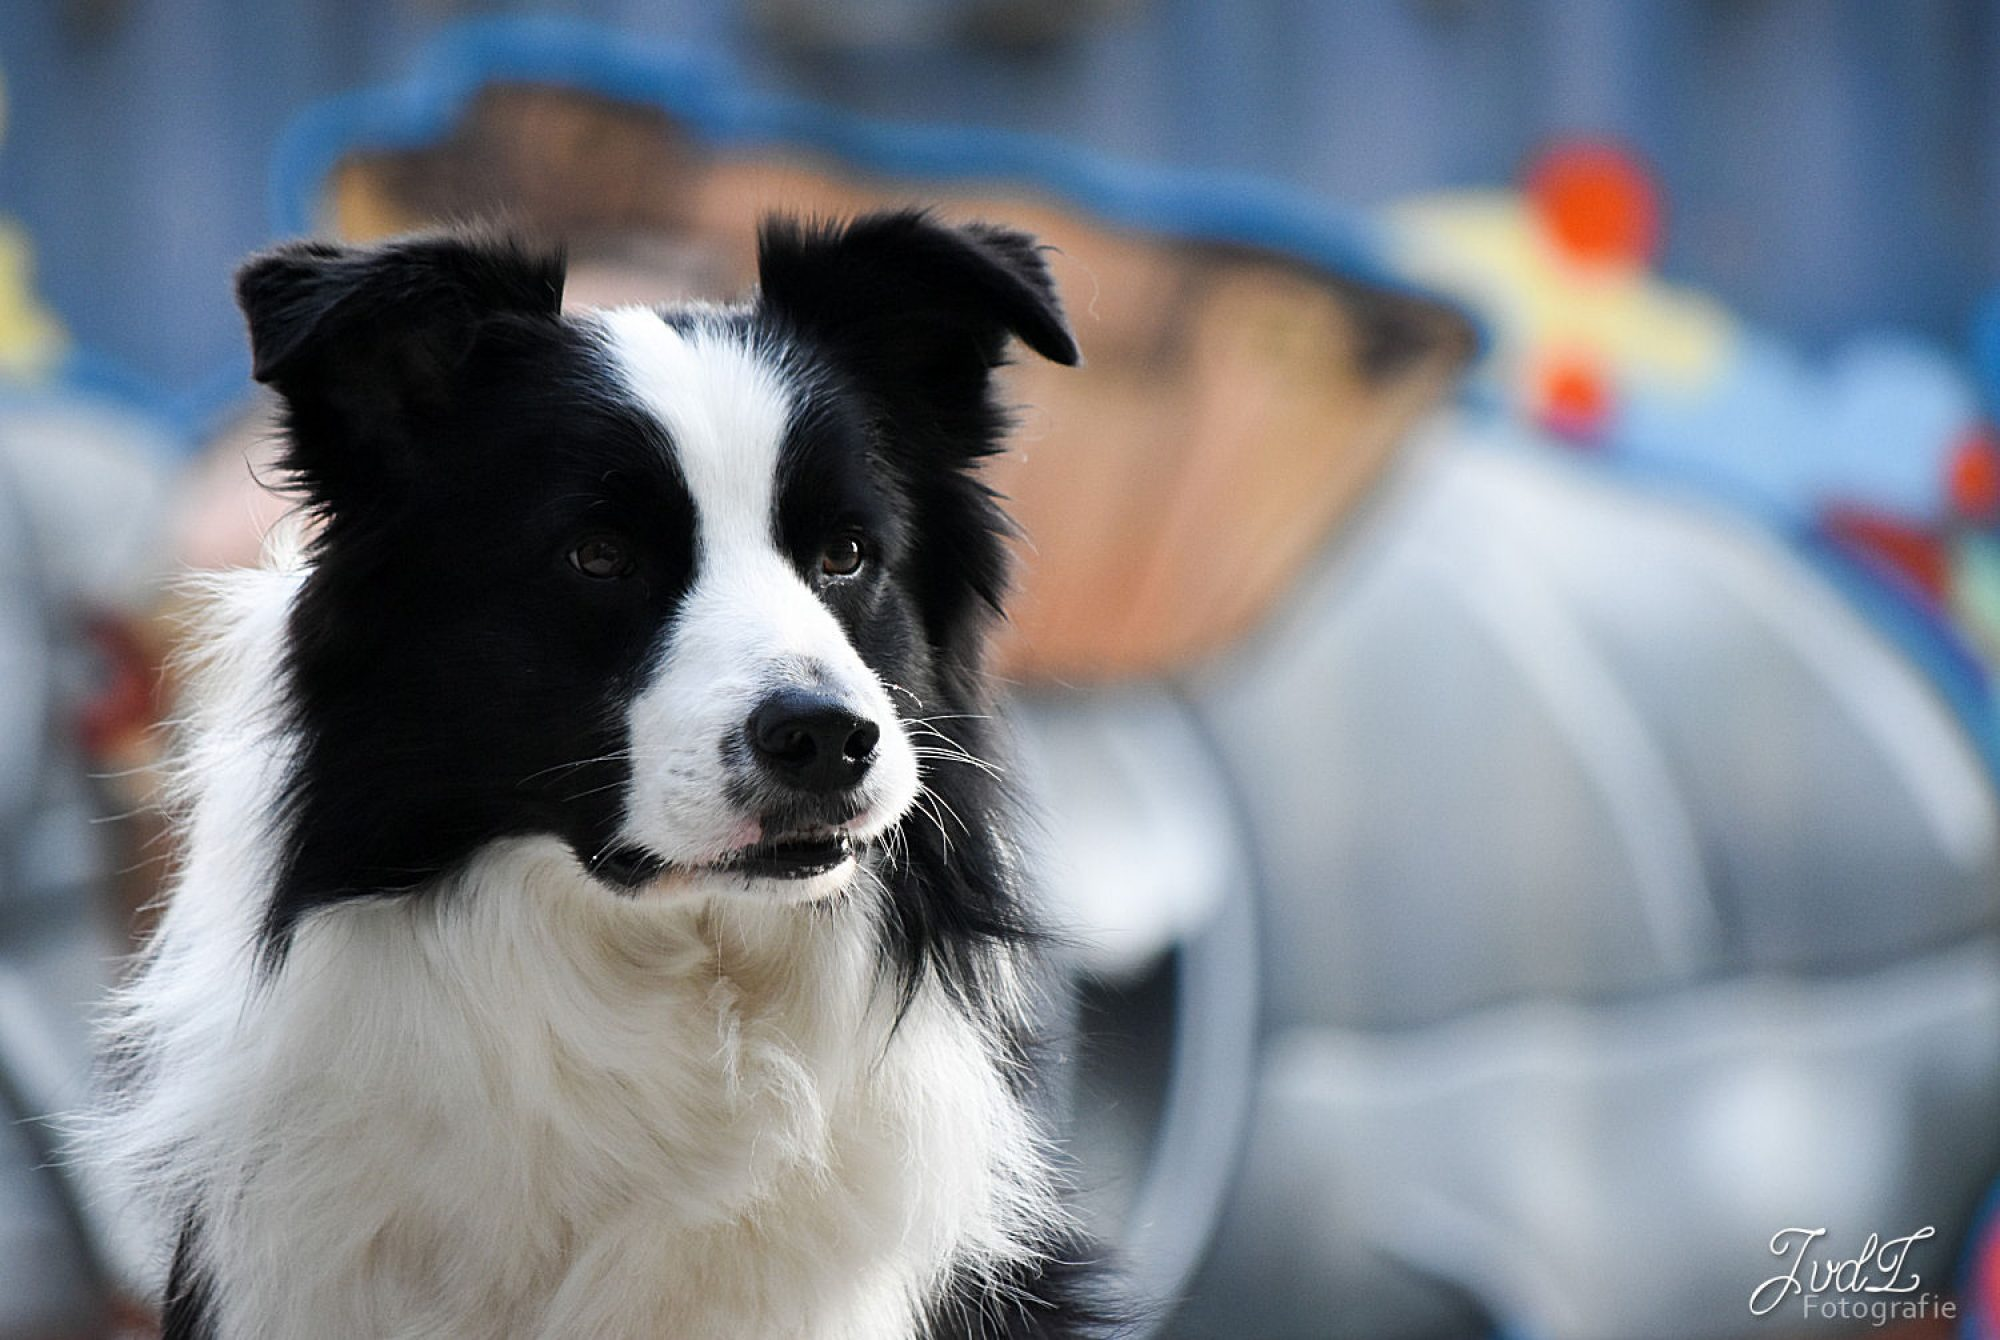 Around Tjopp's Border Collies